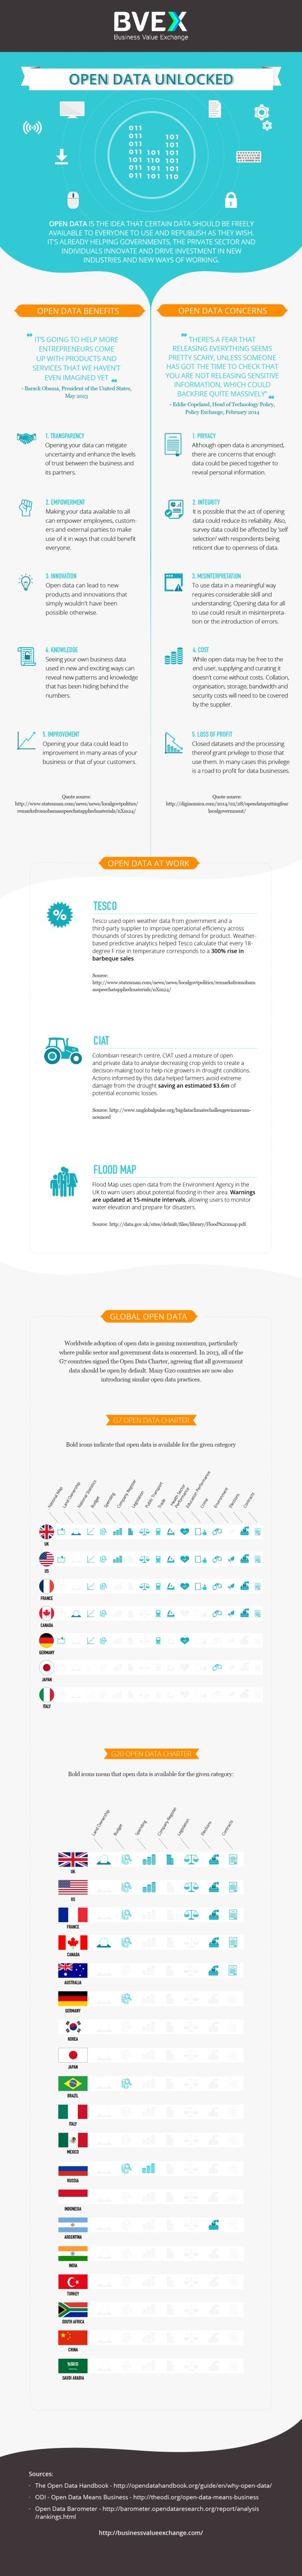 BVEX_Beyond_Infographic#2_Open Data_15.07.2015